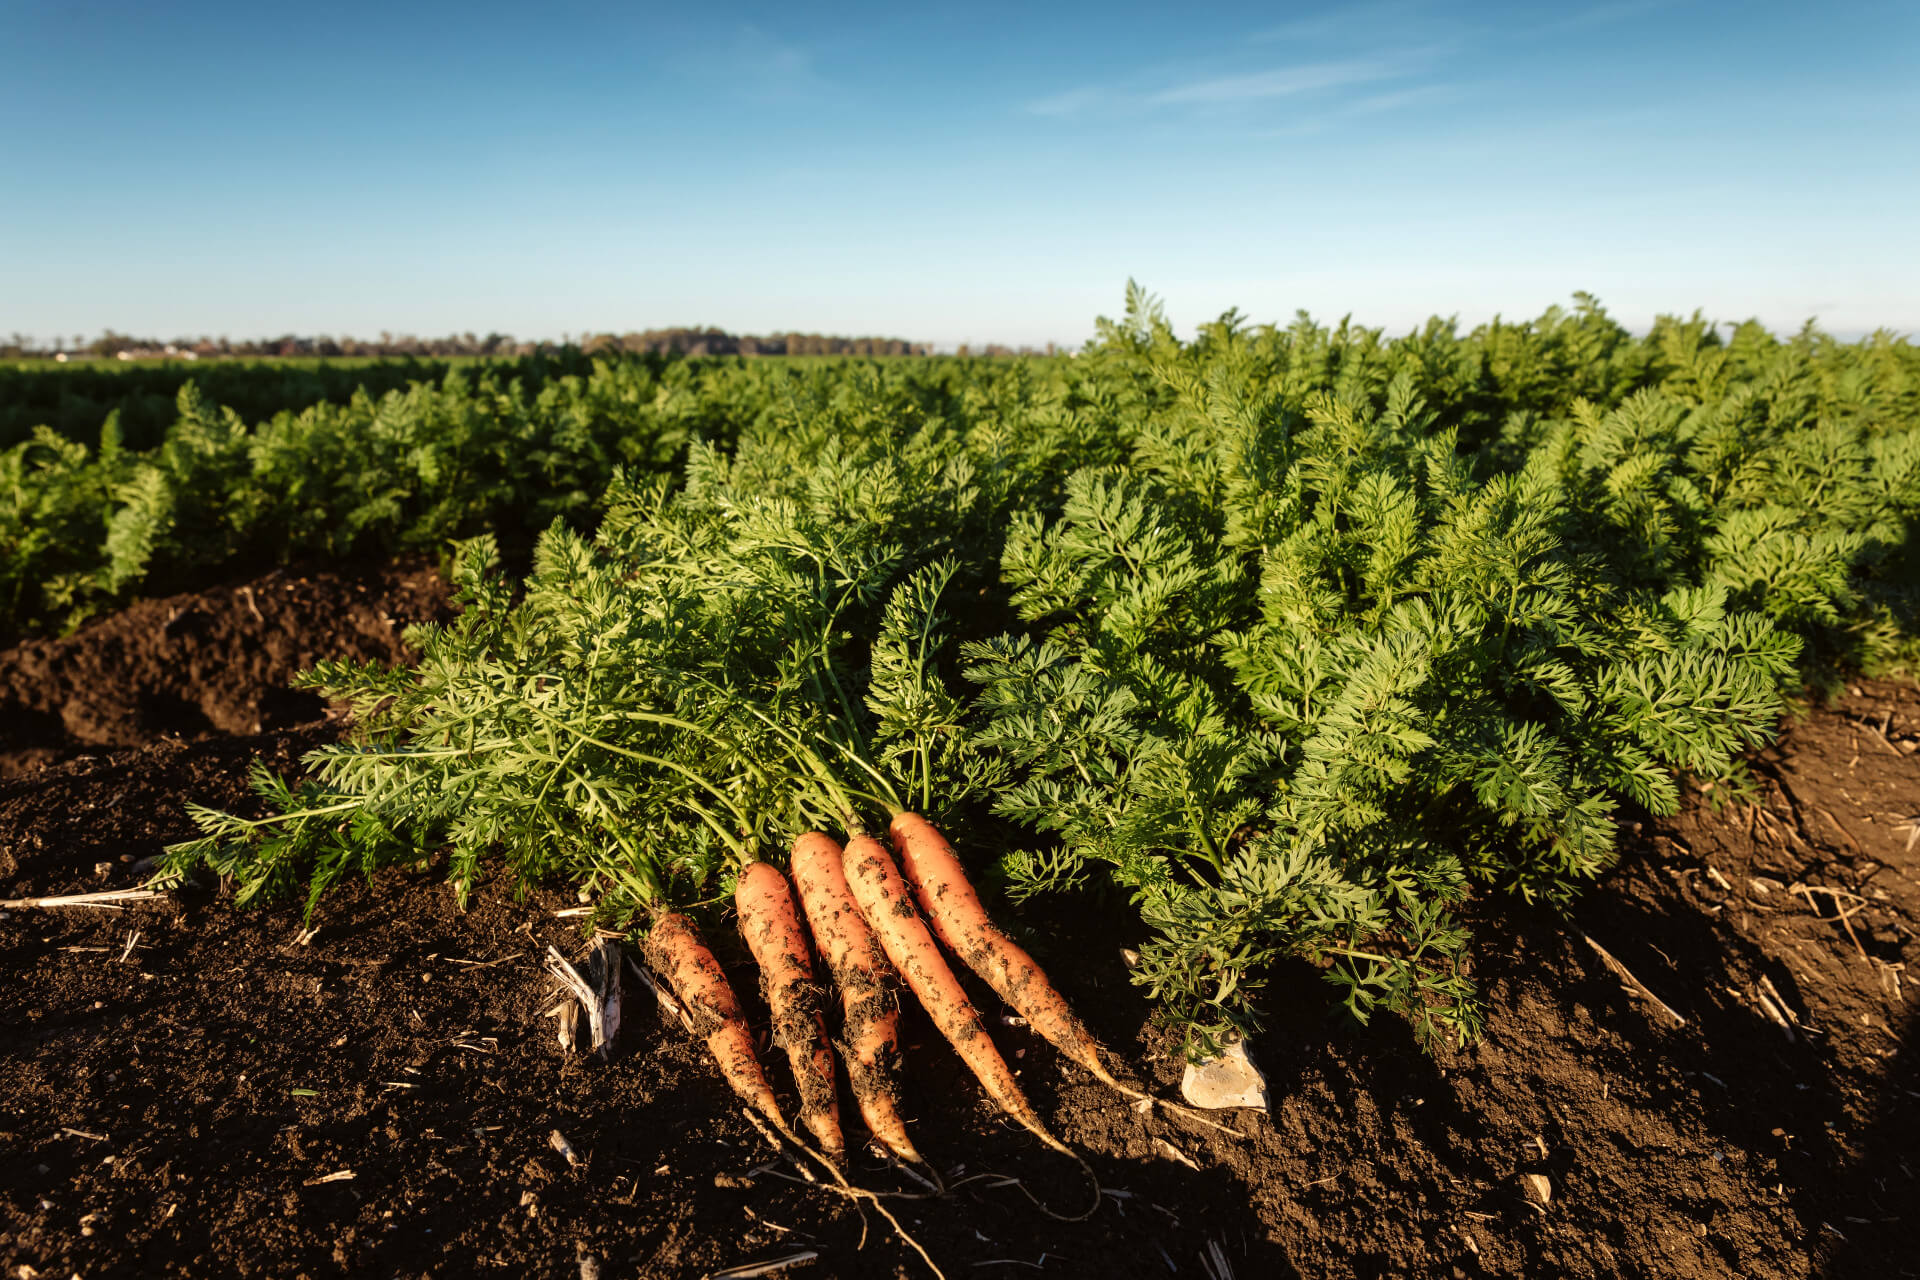 Carrot Field Spain Arcoval SL